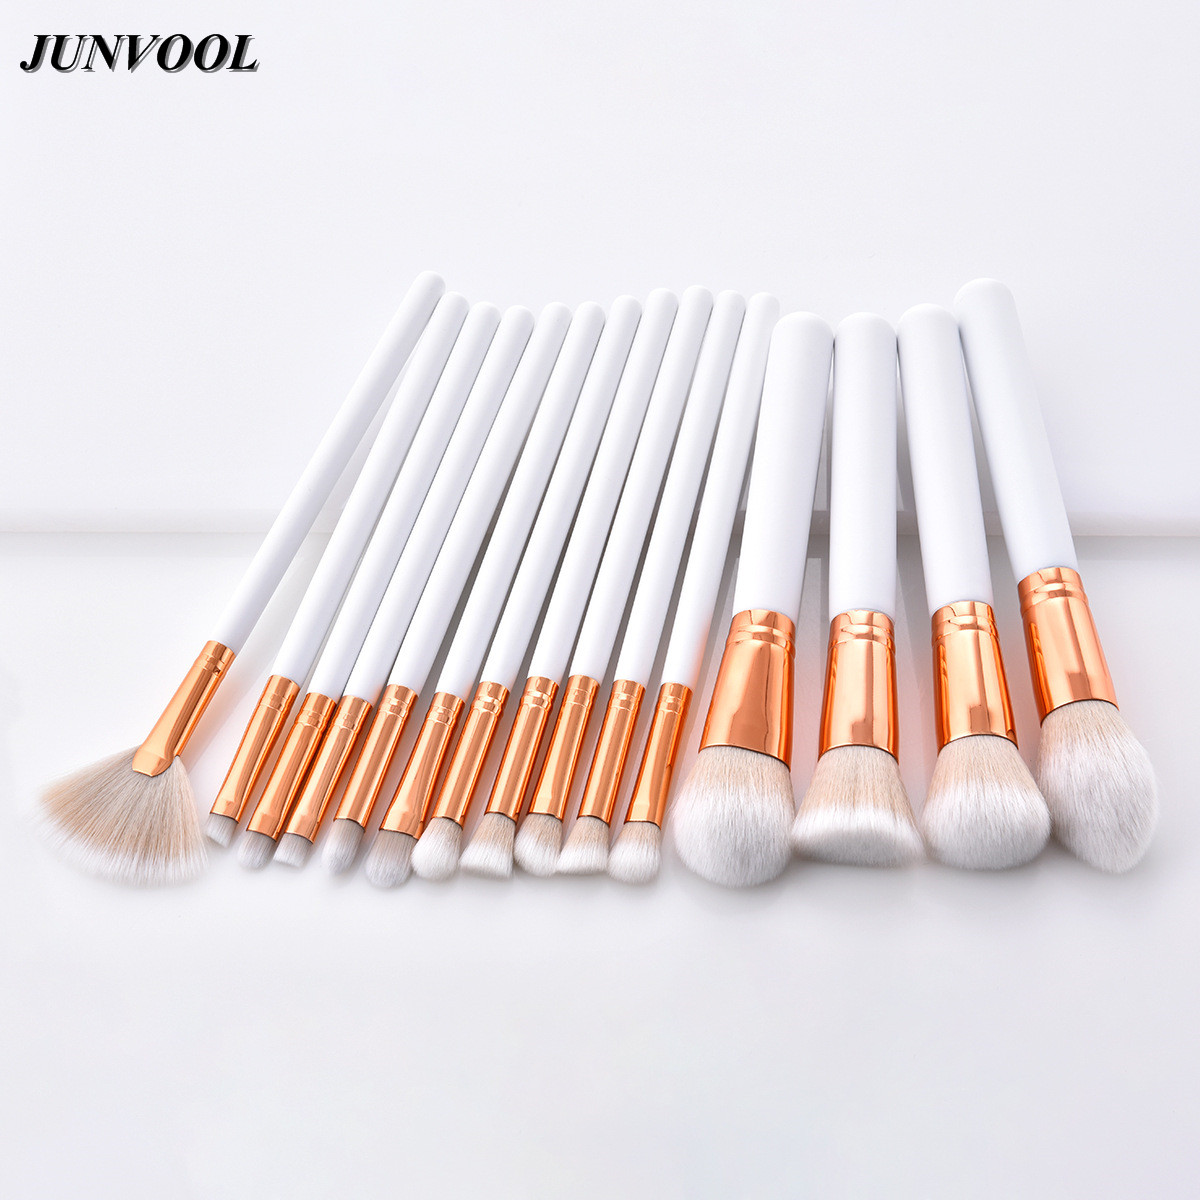 Professional Makeup Brushes Set Foundation Powder Concealer Blending Eyeshadow Cosmetics Fan Brush Kits White Gold Maquiagem 8pcs makeup brushes cosmetics eyeshadow eyeliner brush kit 15 color concealer facial care camouflage makeup palette sponge puff